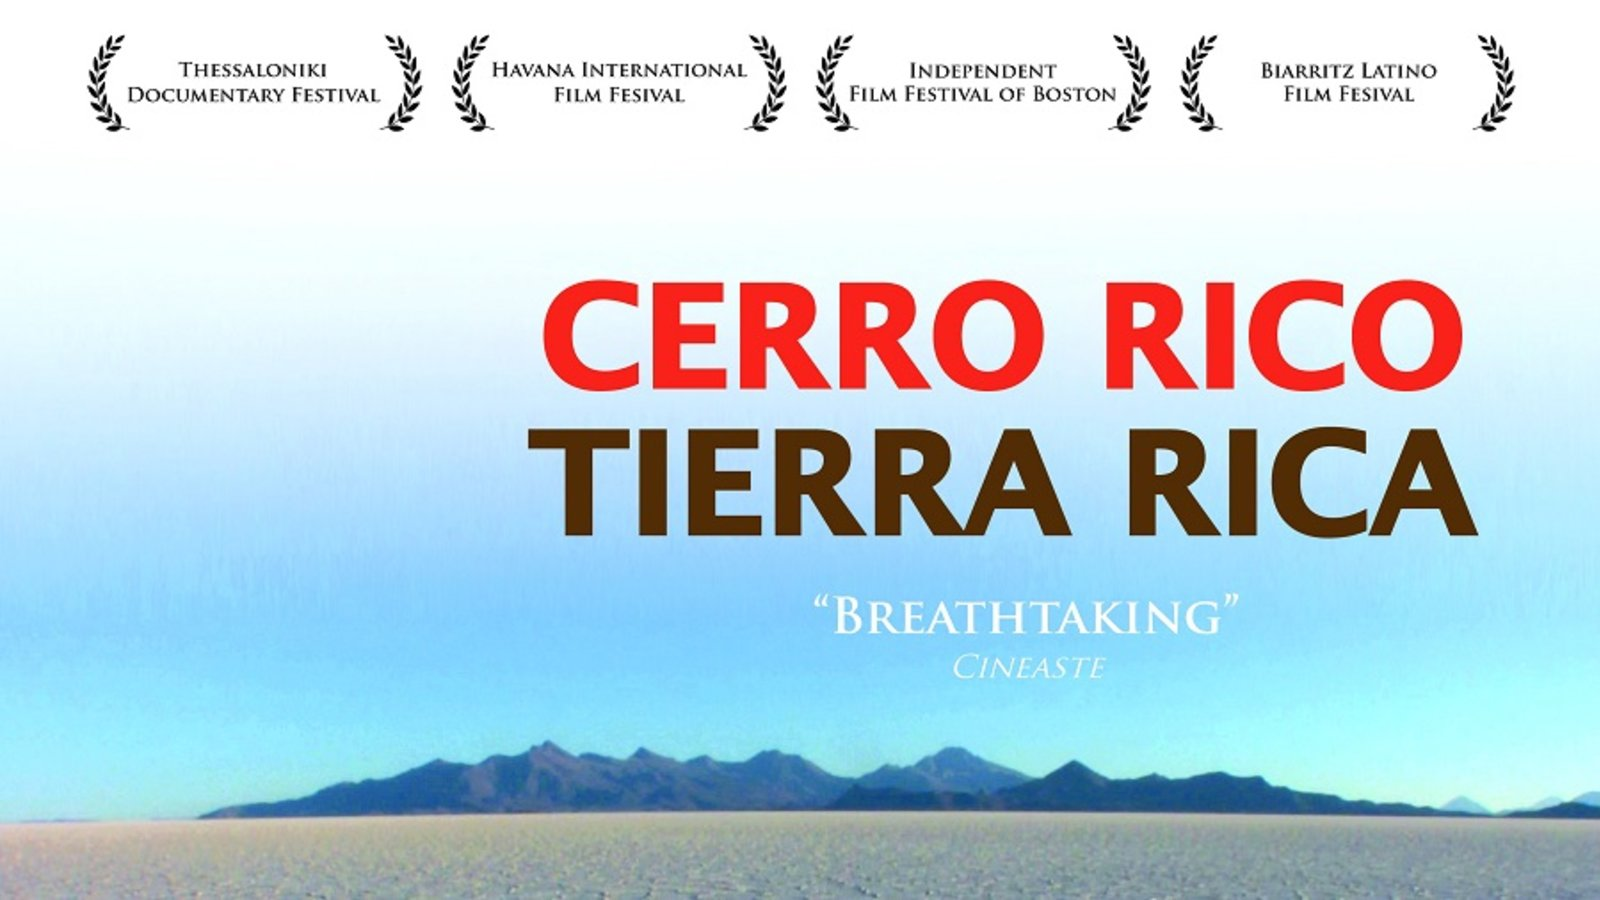 Cerro Rico, Tierra Rica - The Daily Rituals of a Bolivian Mining Community